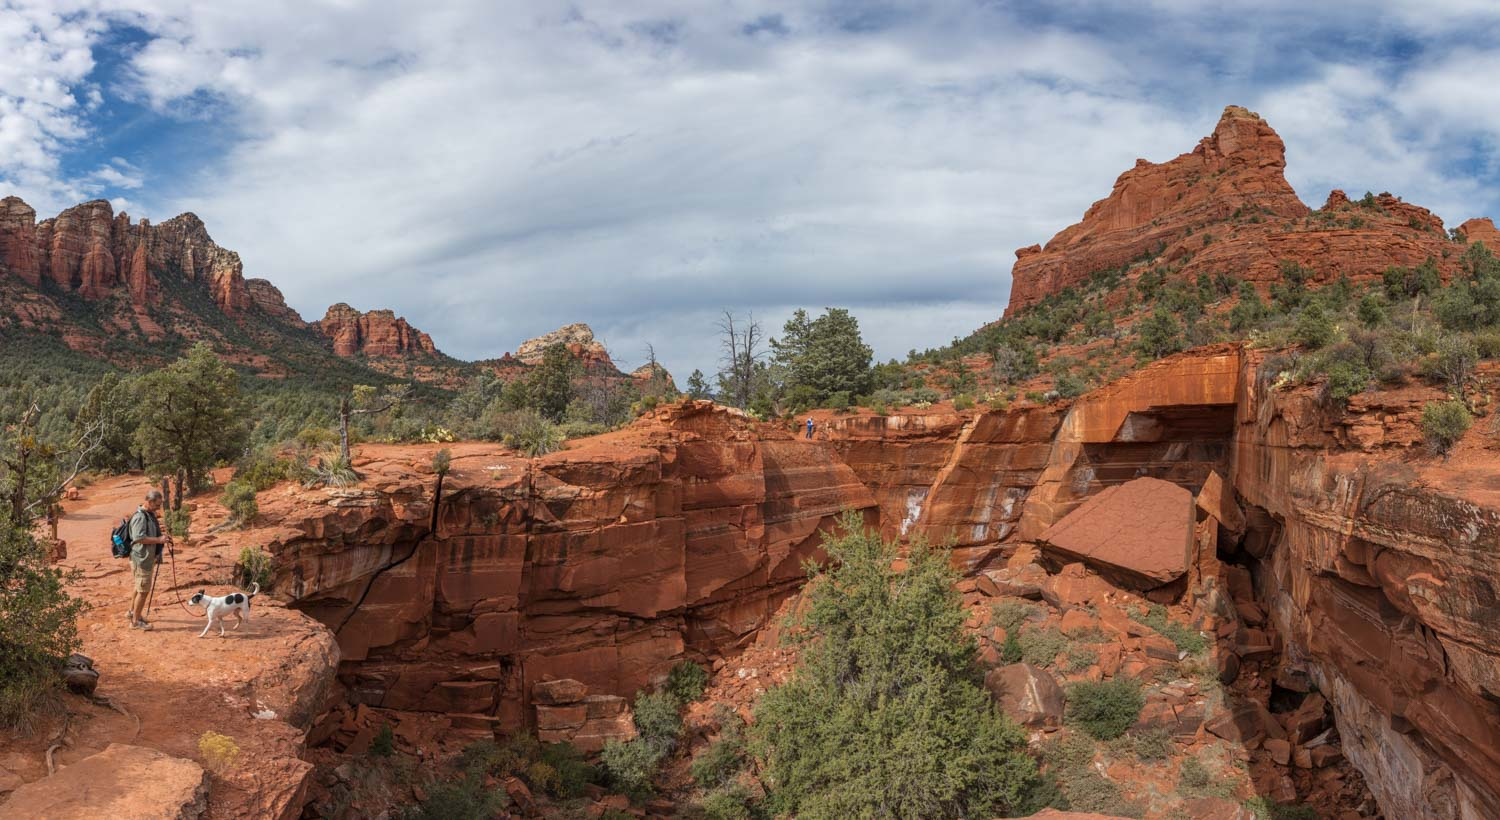 20171113_arizona-9103-Pano